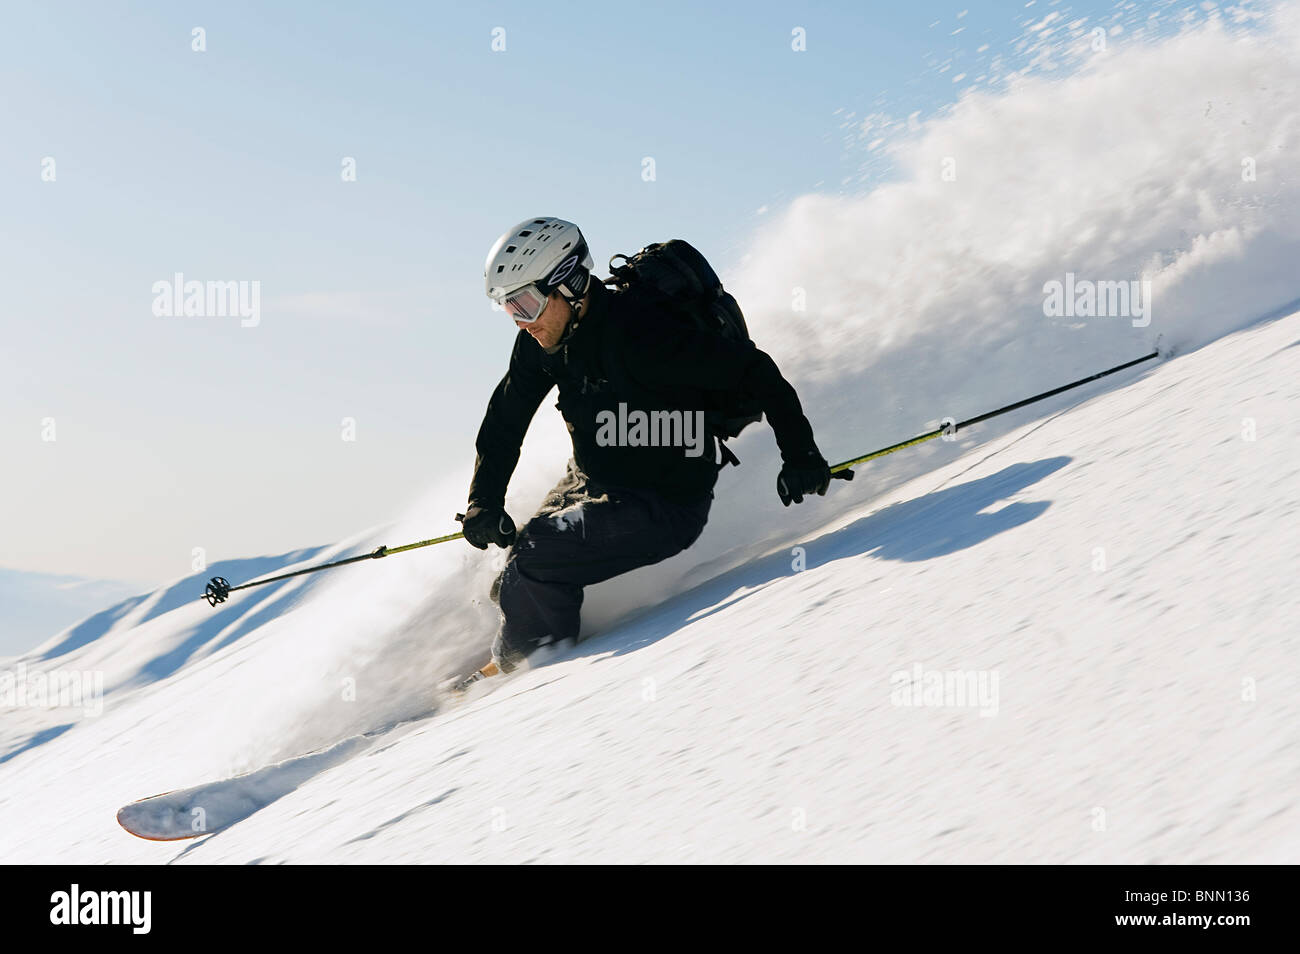 A backcountry skier carving through the powder in Hatcher Pass, Alaska Stock Photo